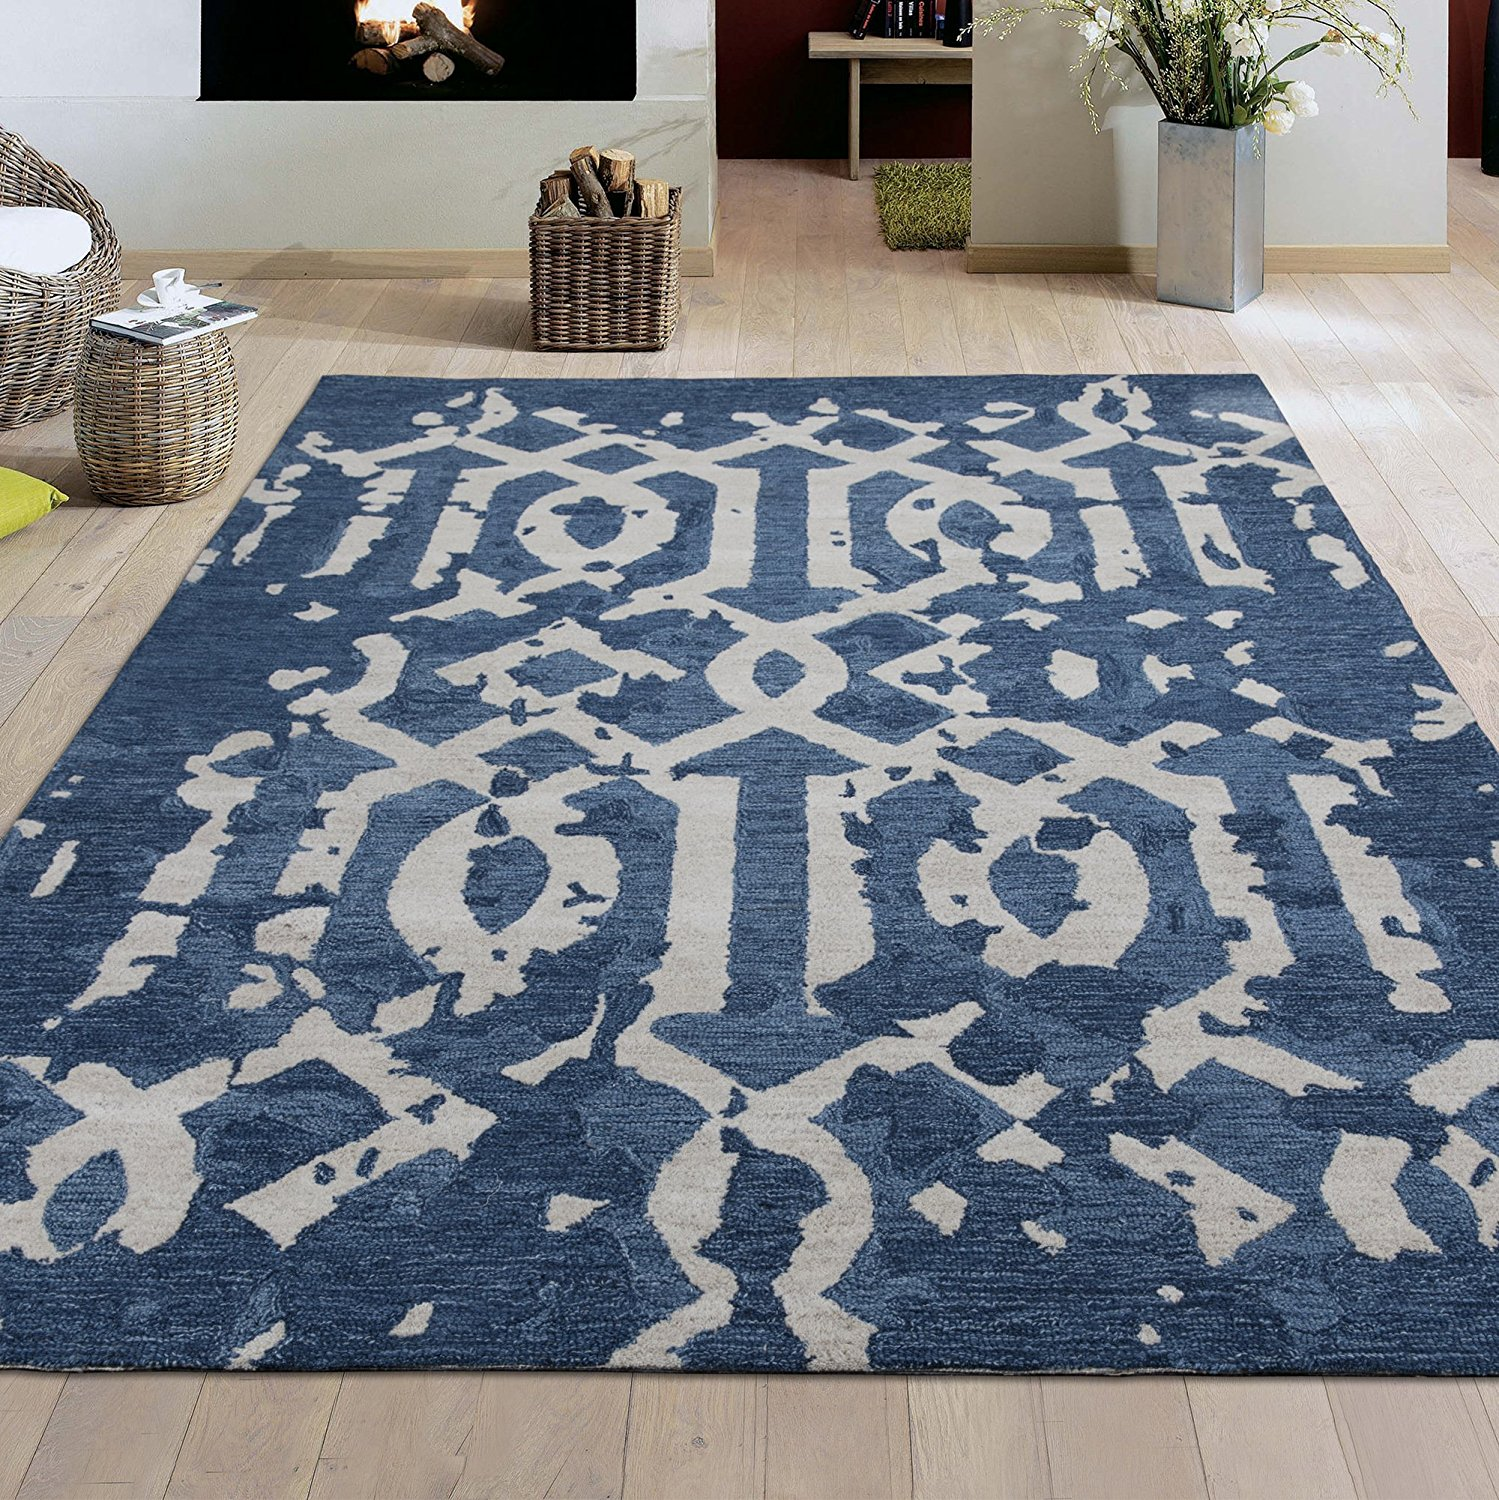 Ottomanson Hand-Tufted Hampton Collection Natural Wool Distressed Moroccan Trellis Rug, Navy, 5' X 7'